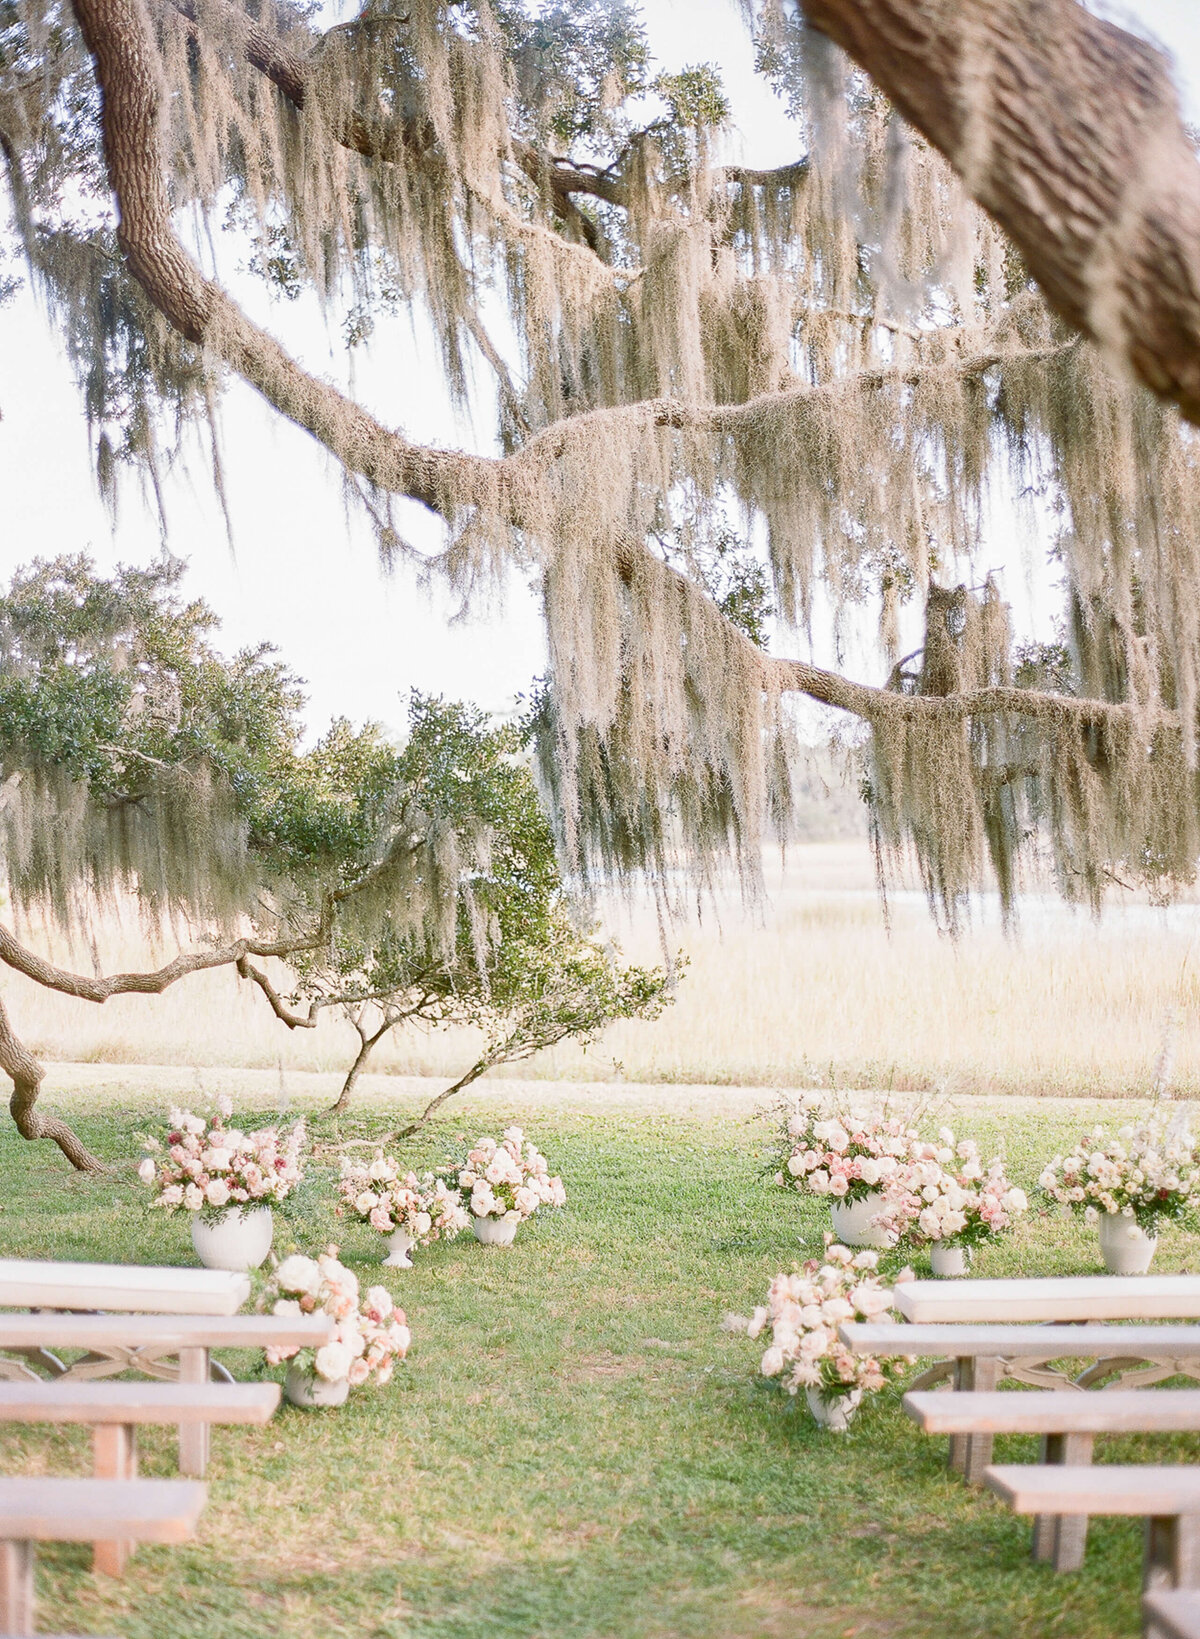 kiawah-river-wedding-clay-austin-photography-45